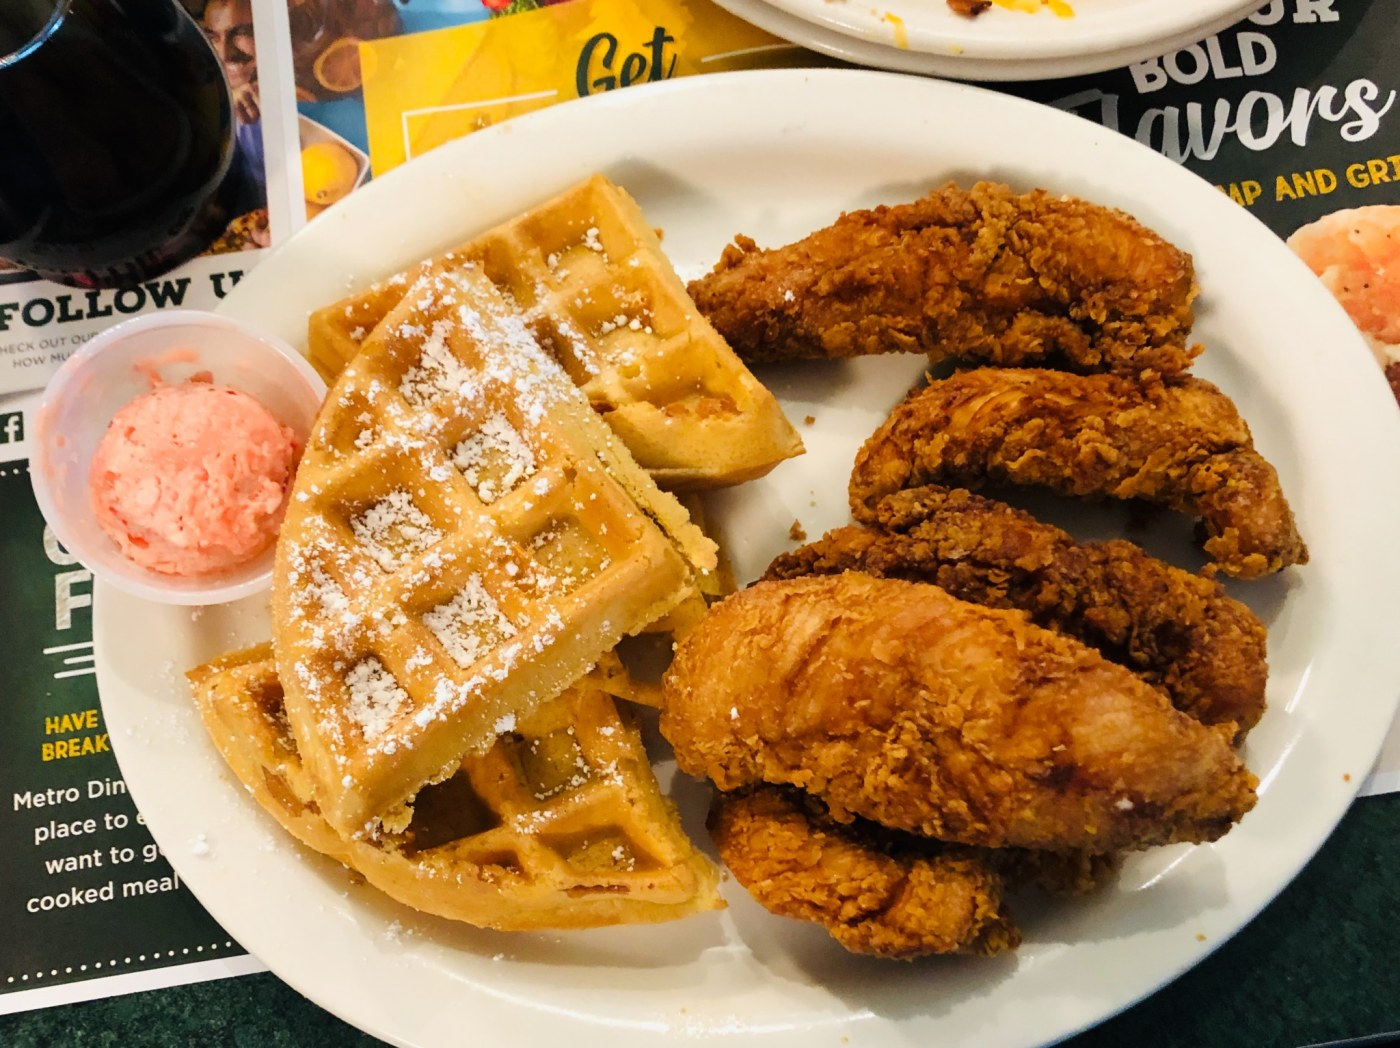 Metro Diner Chicken and Waffles